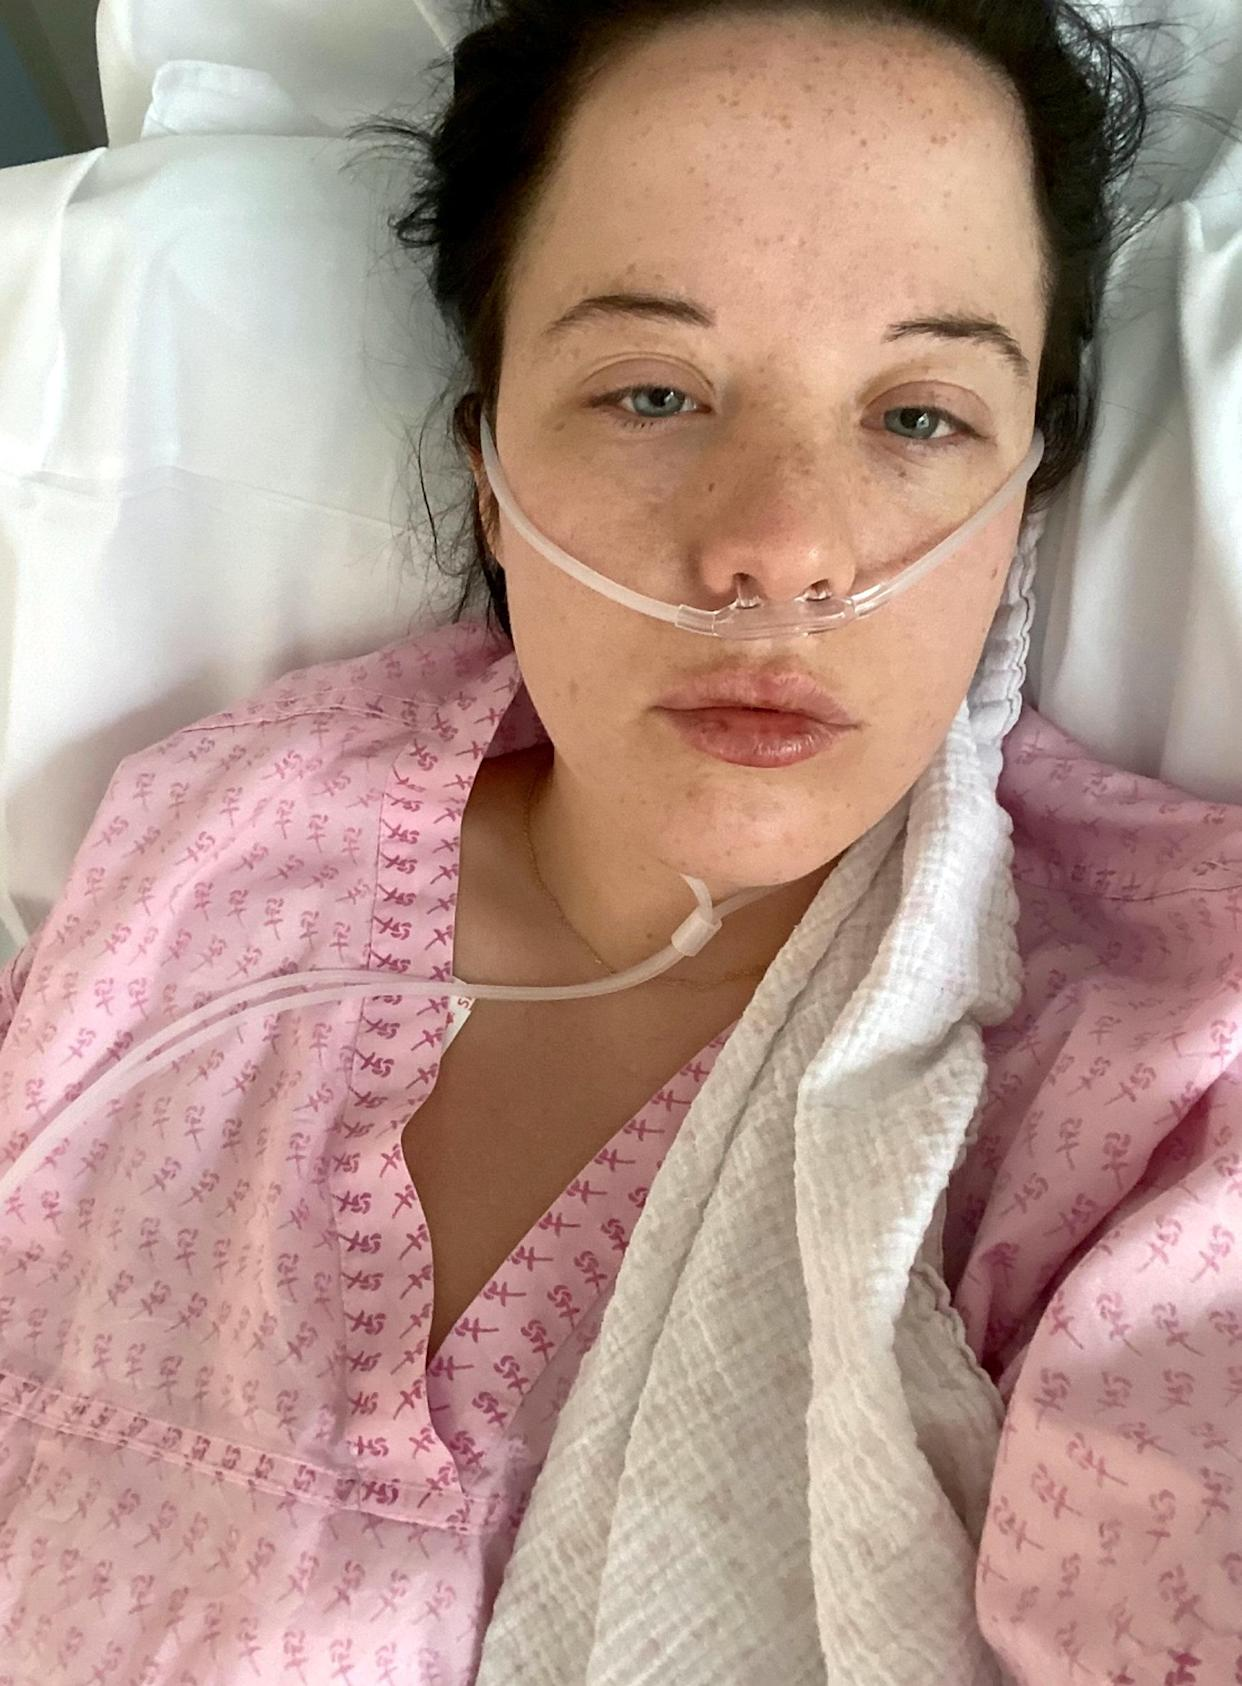 Kirsty Hext in hospital after her allergic reaction of the Pfizer vaccine. (SWNS)